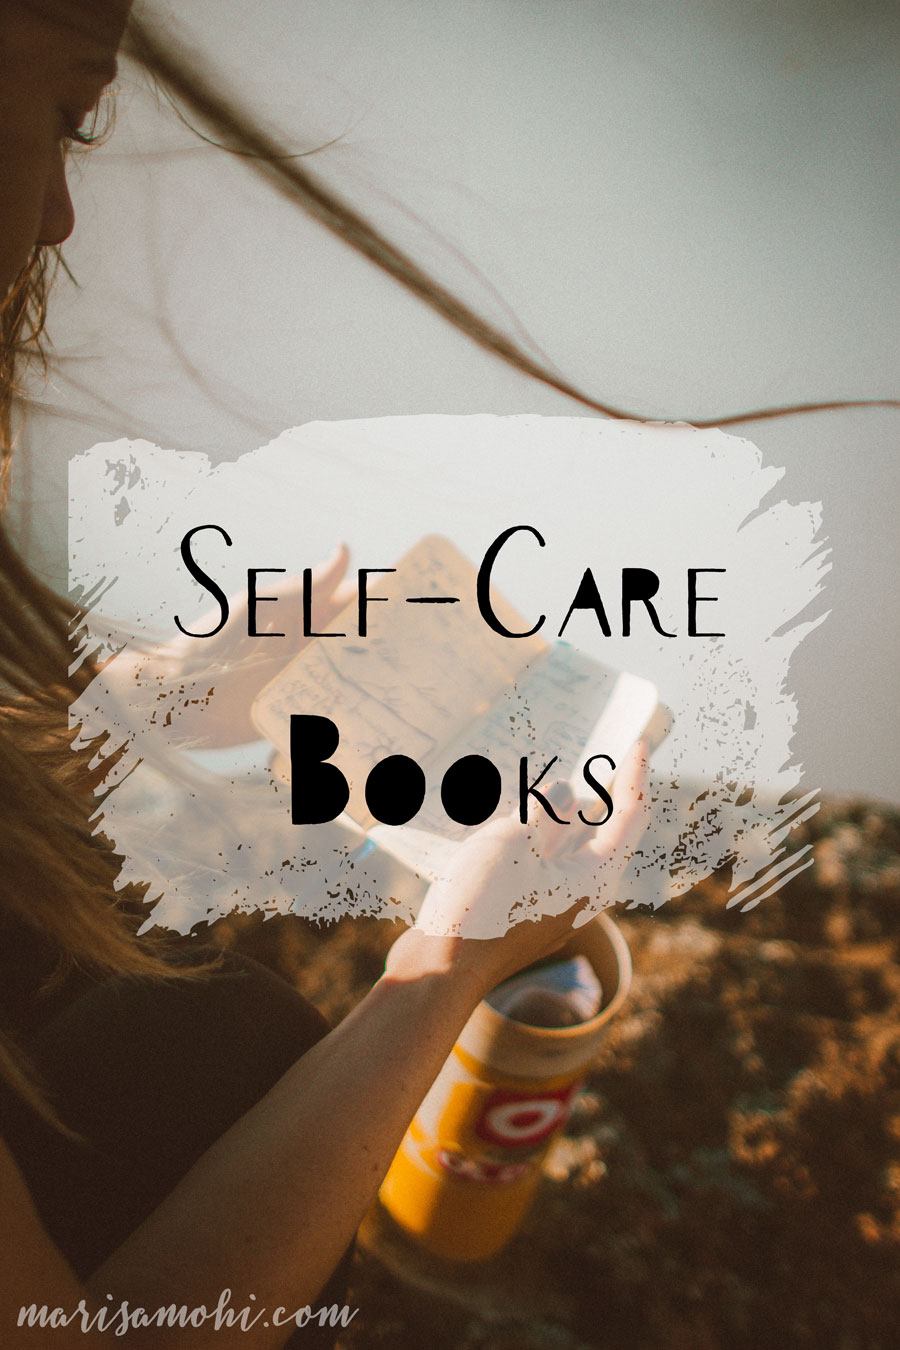 Self-Care Books